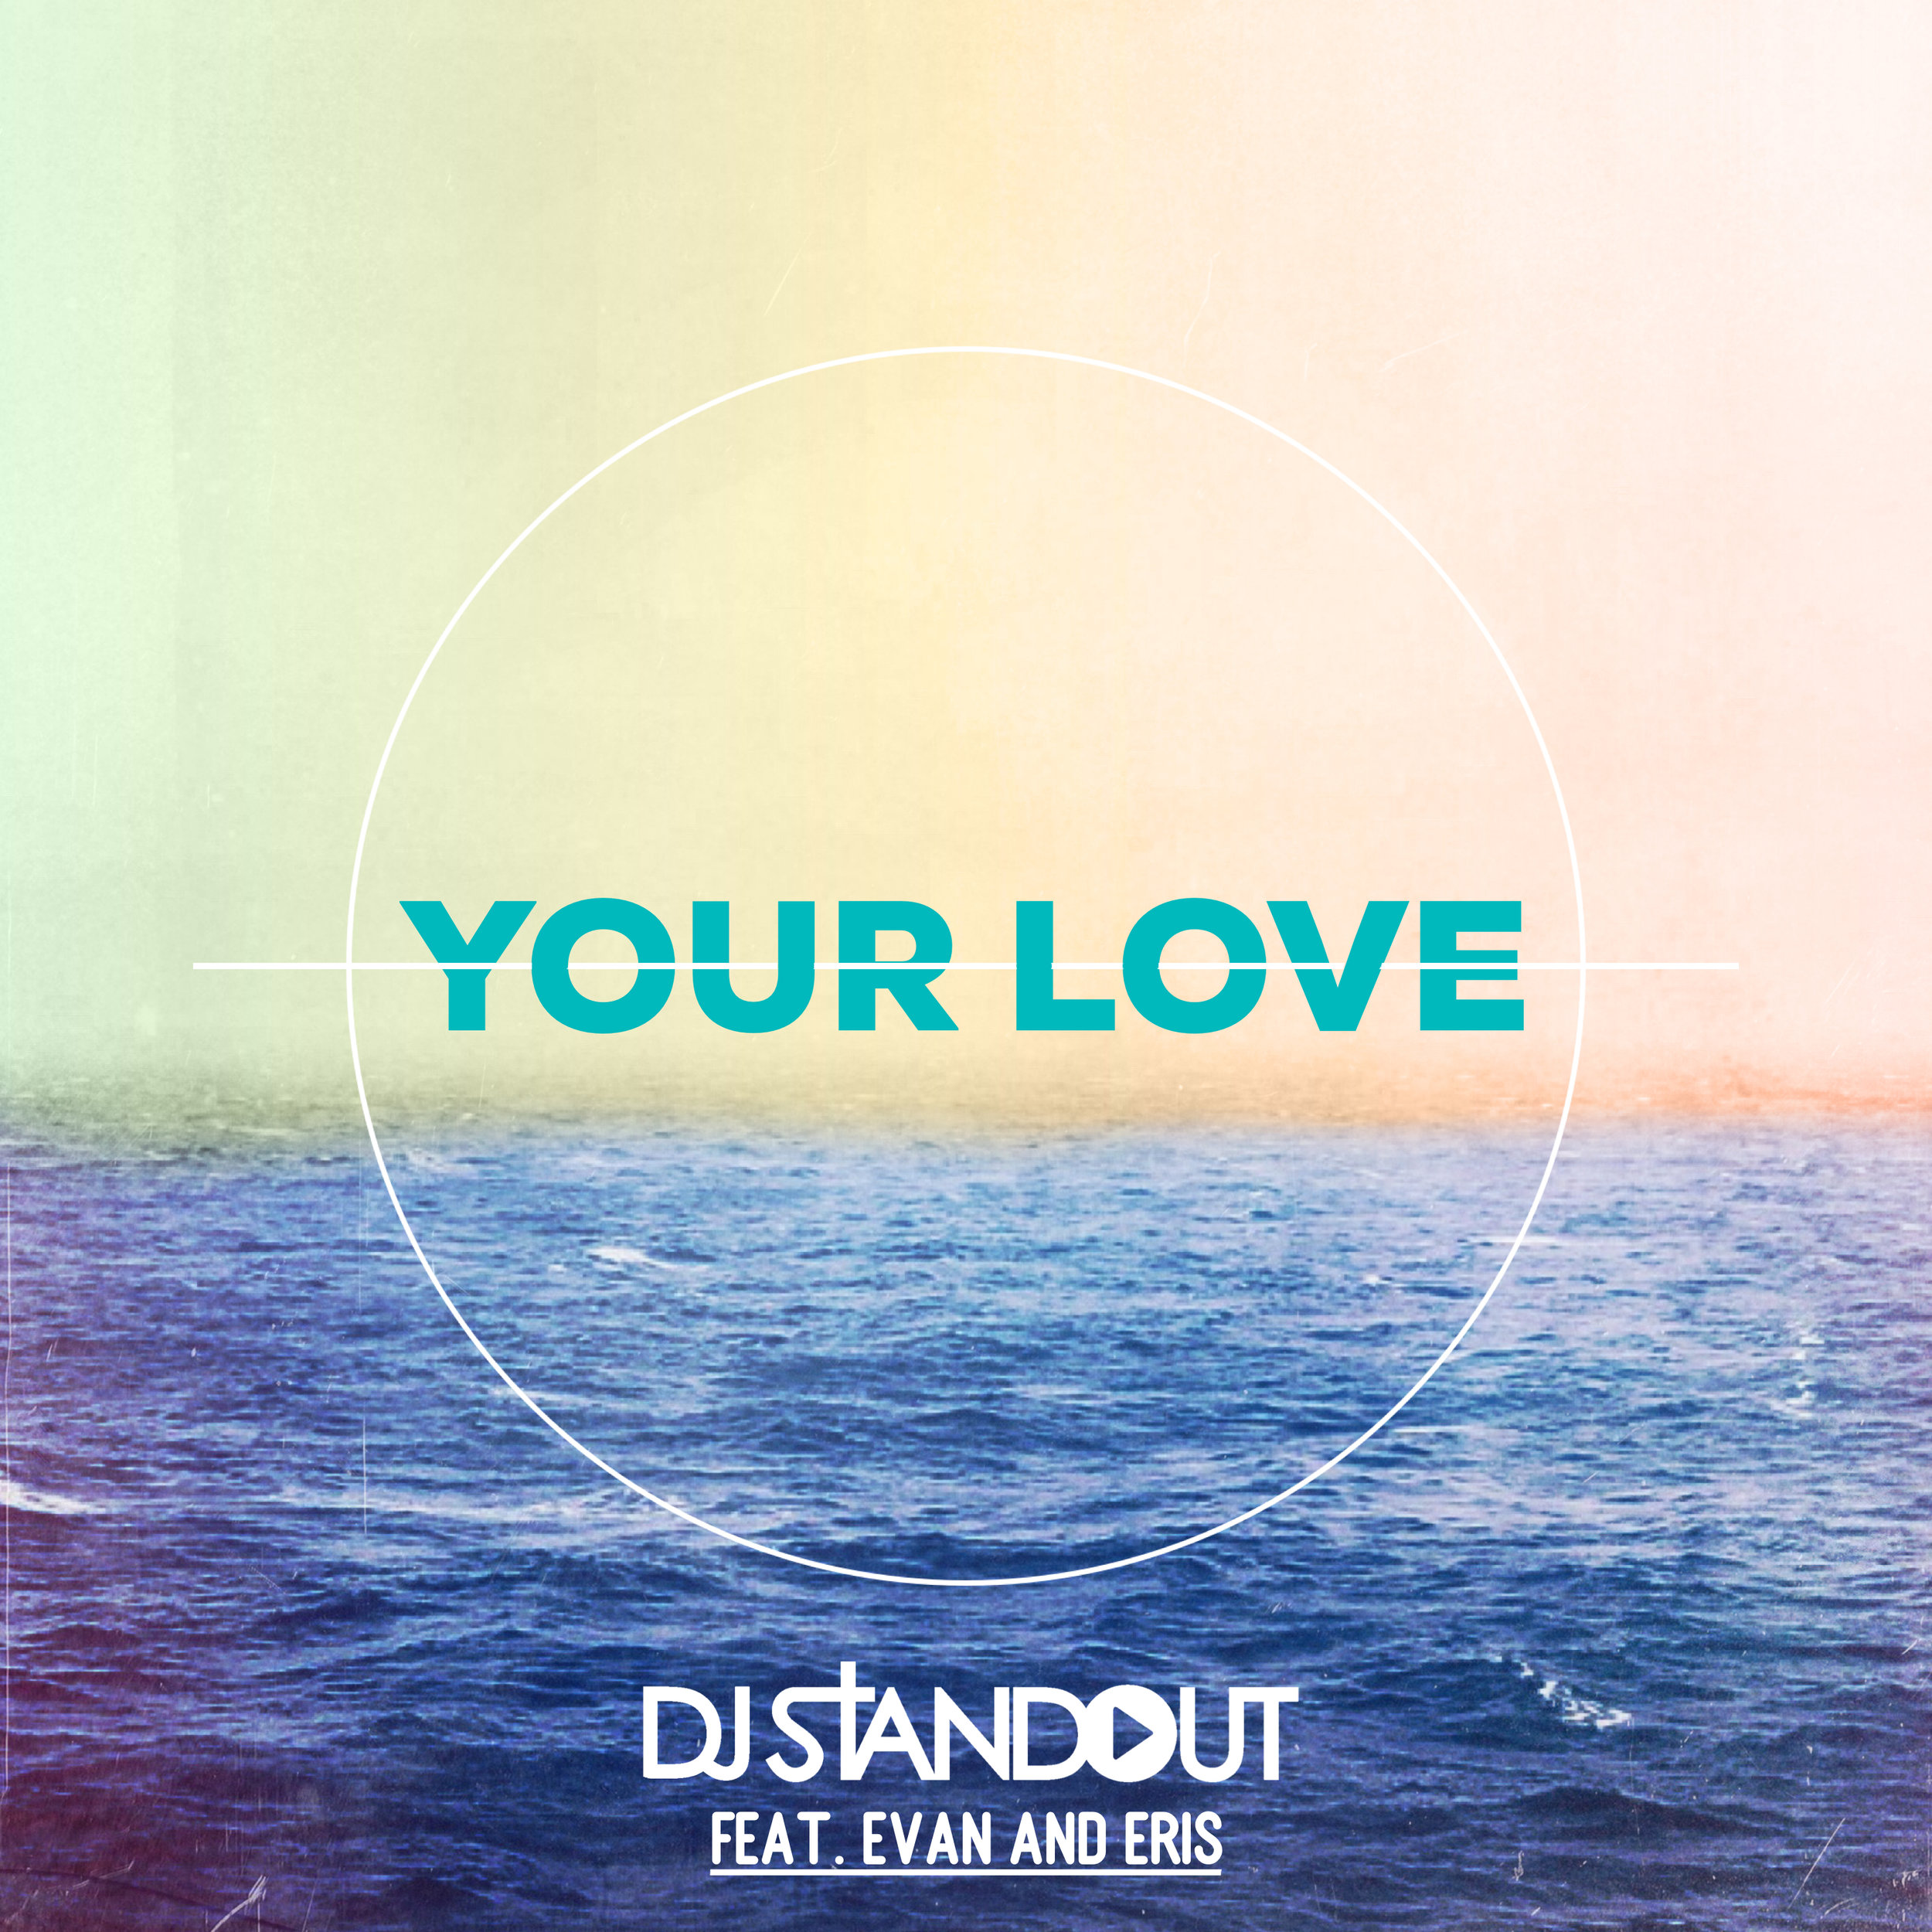 Your Love Cover Art.JPG